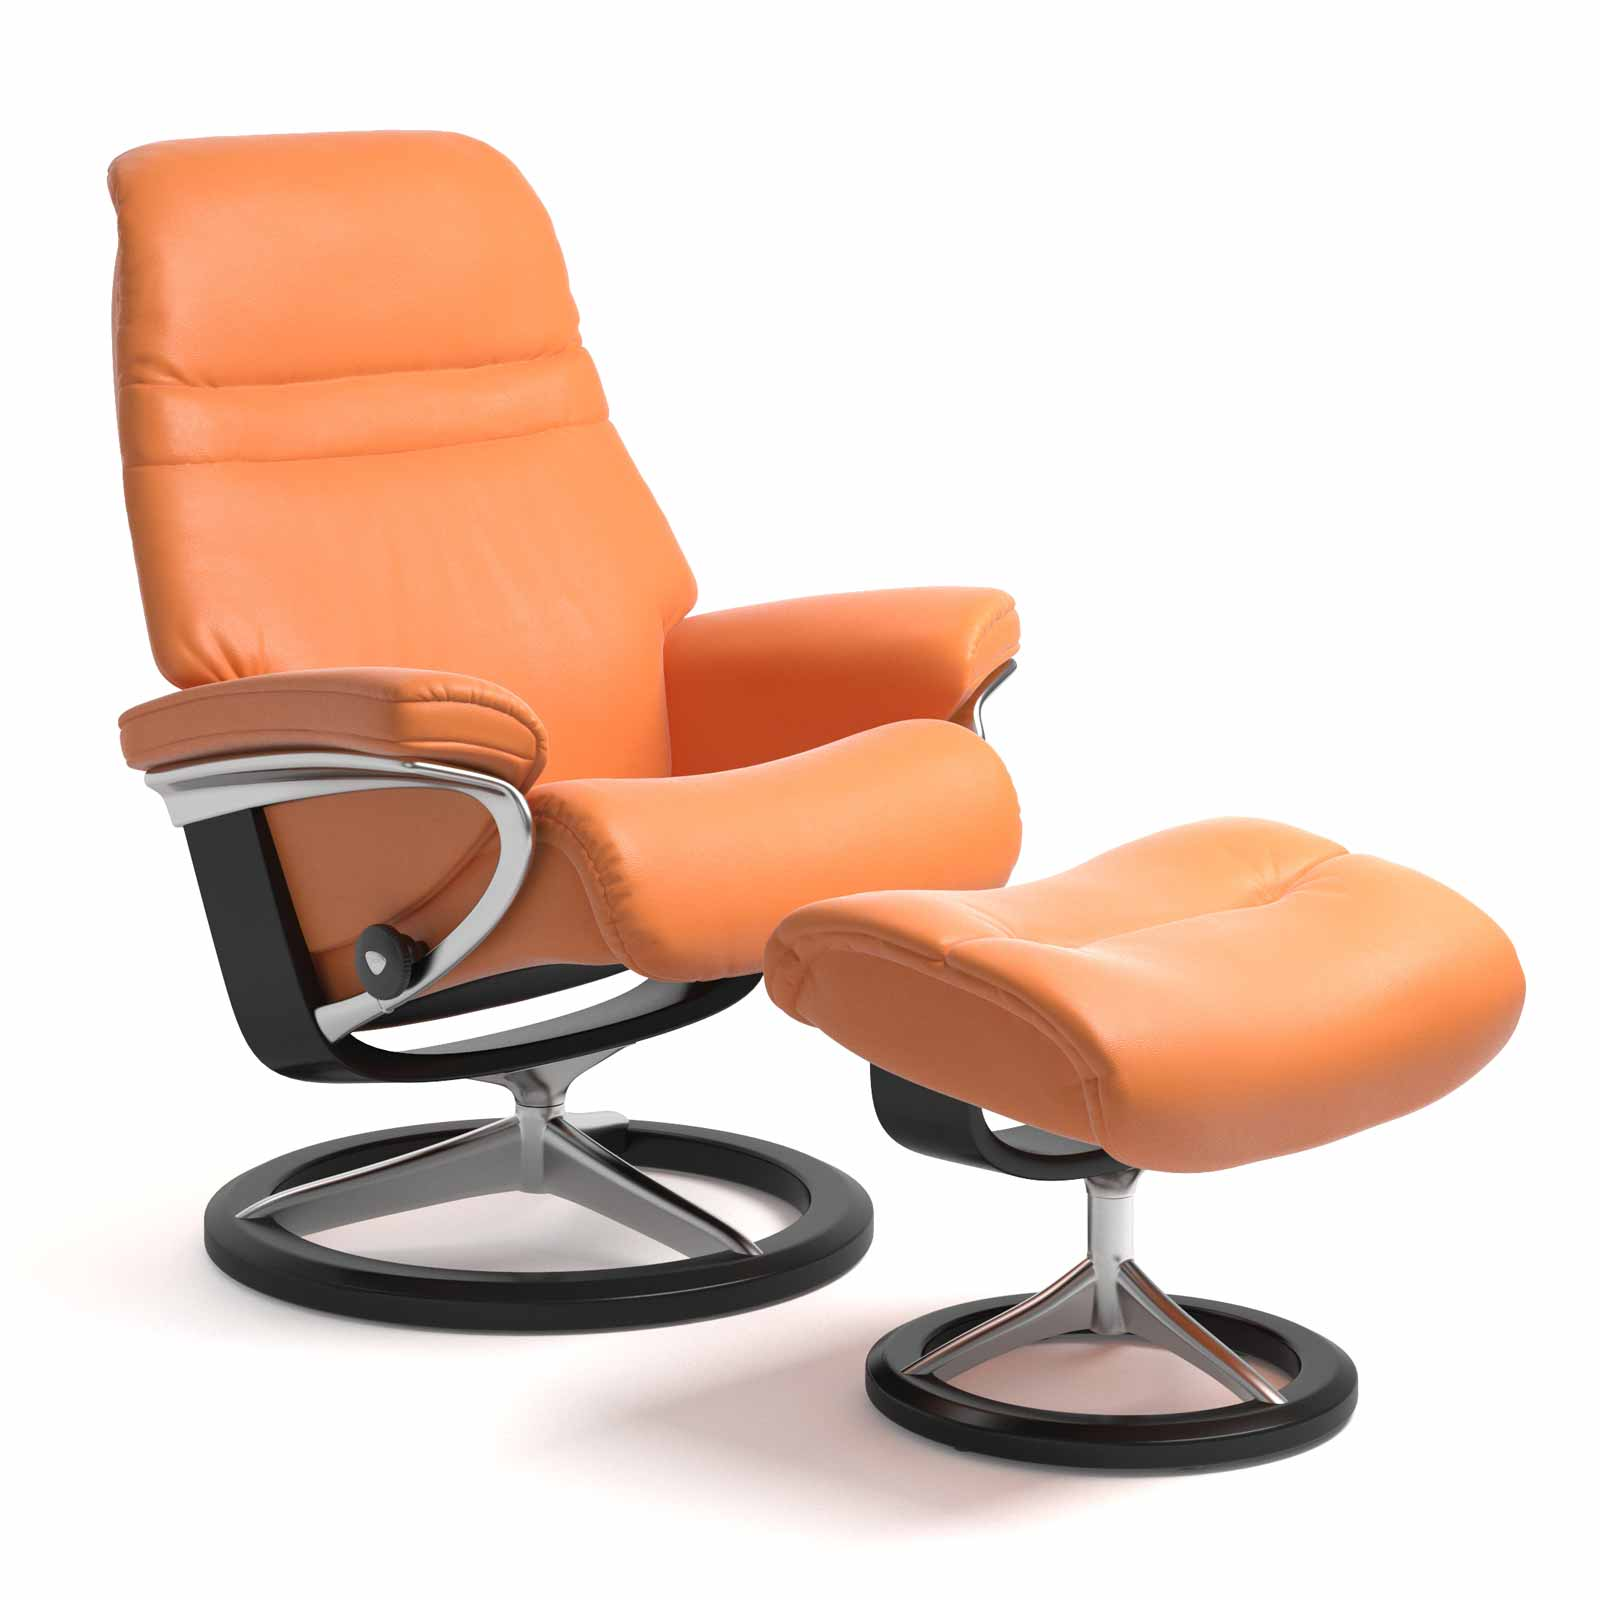 Stressless Sessel Sunrise Signature Paloma Apricot Orange Mit Hocker